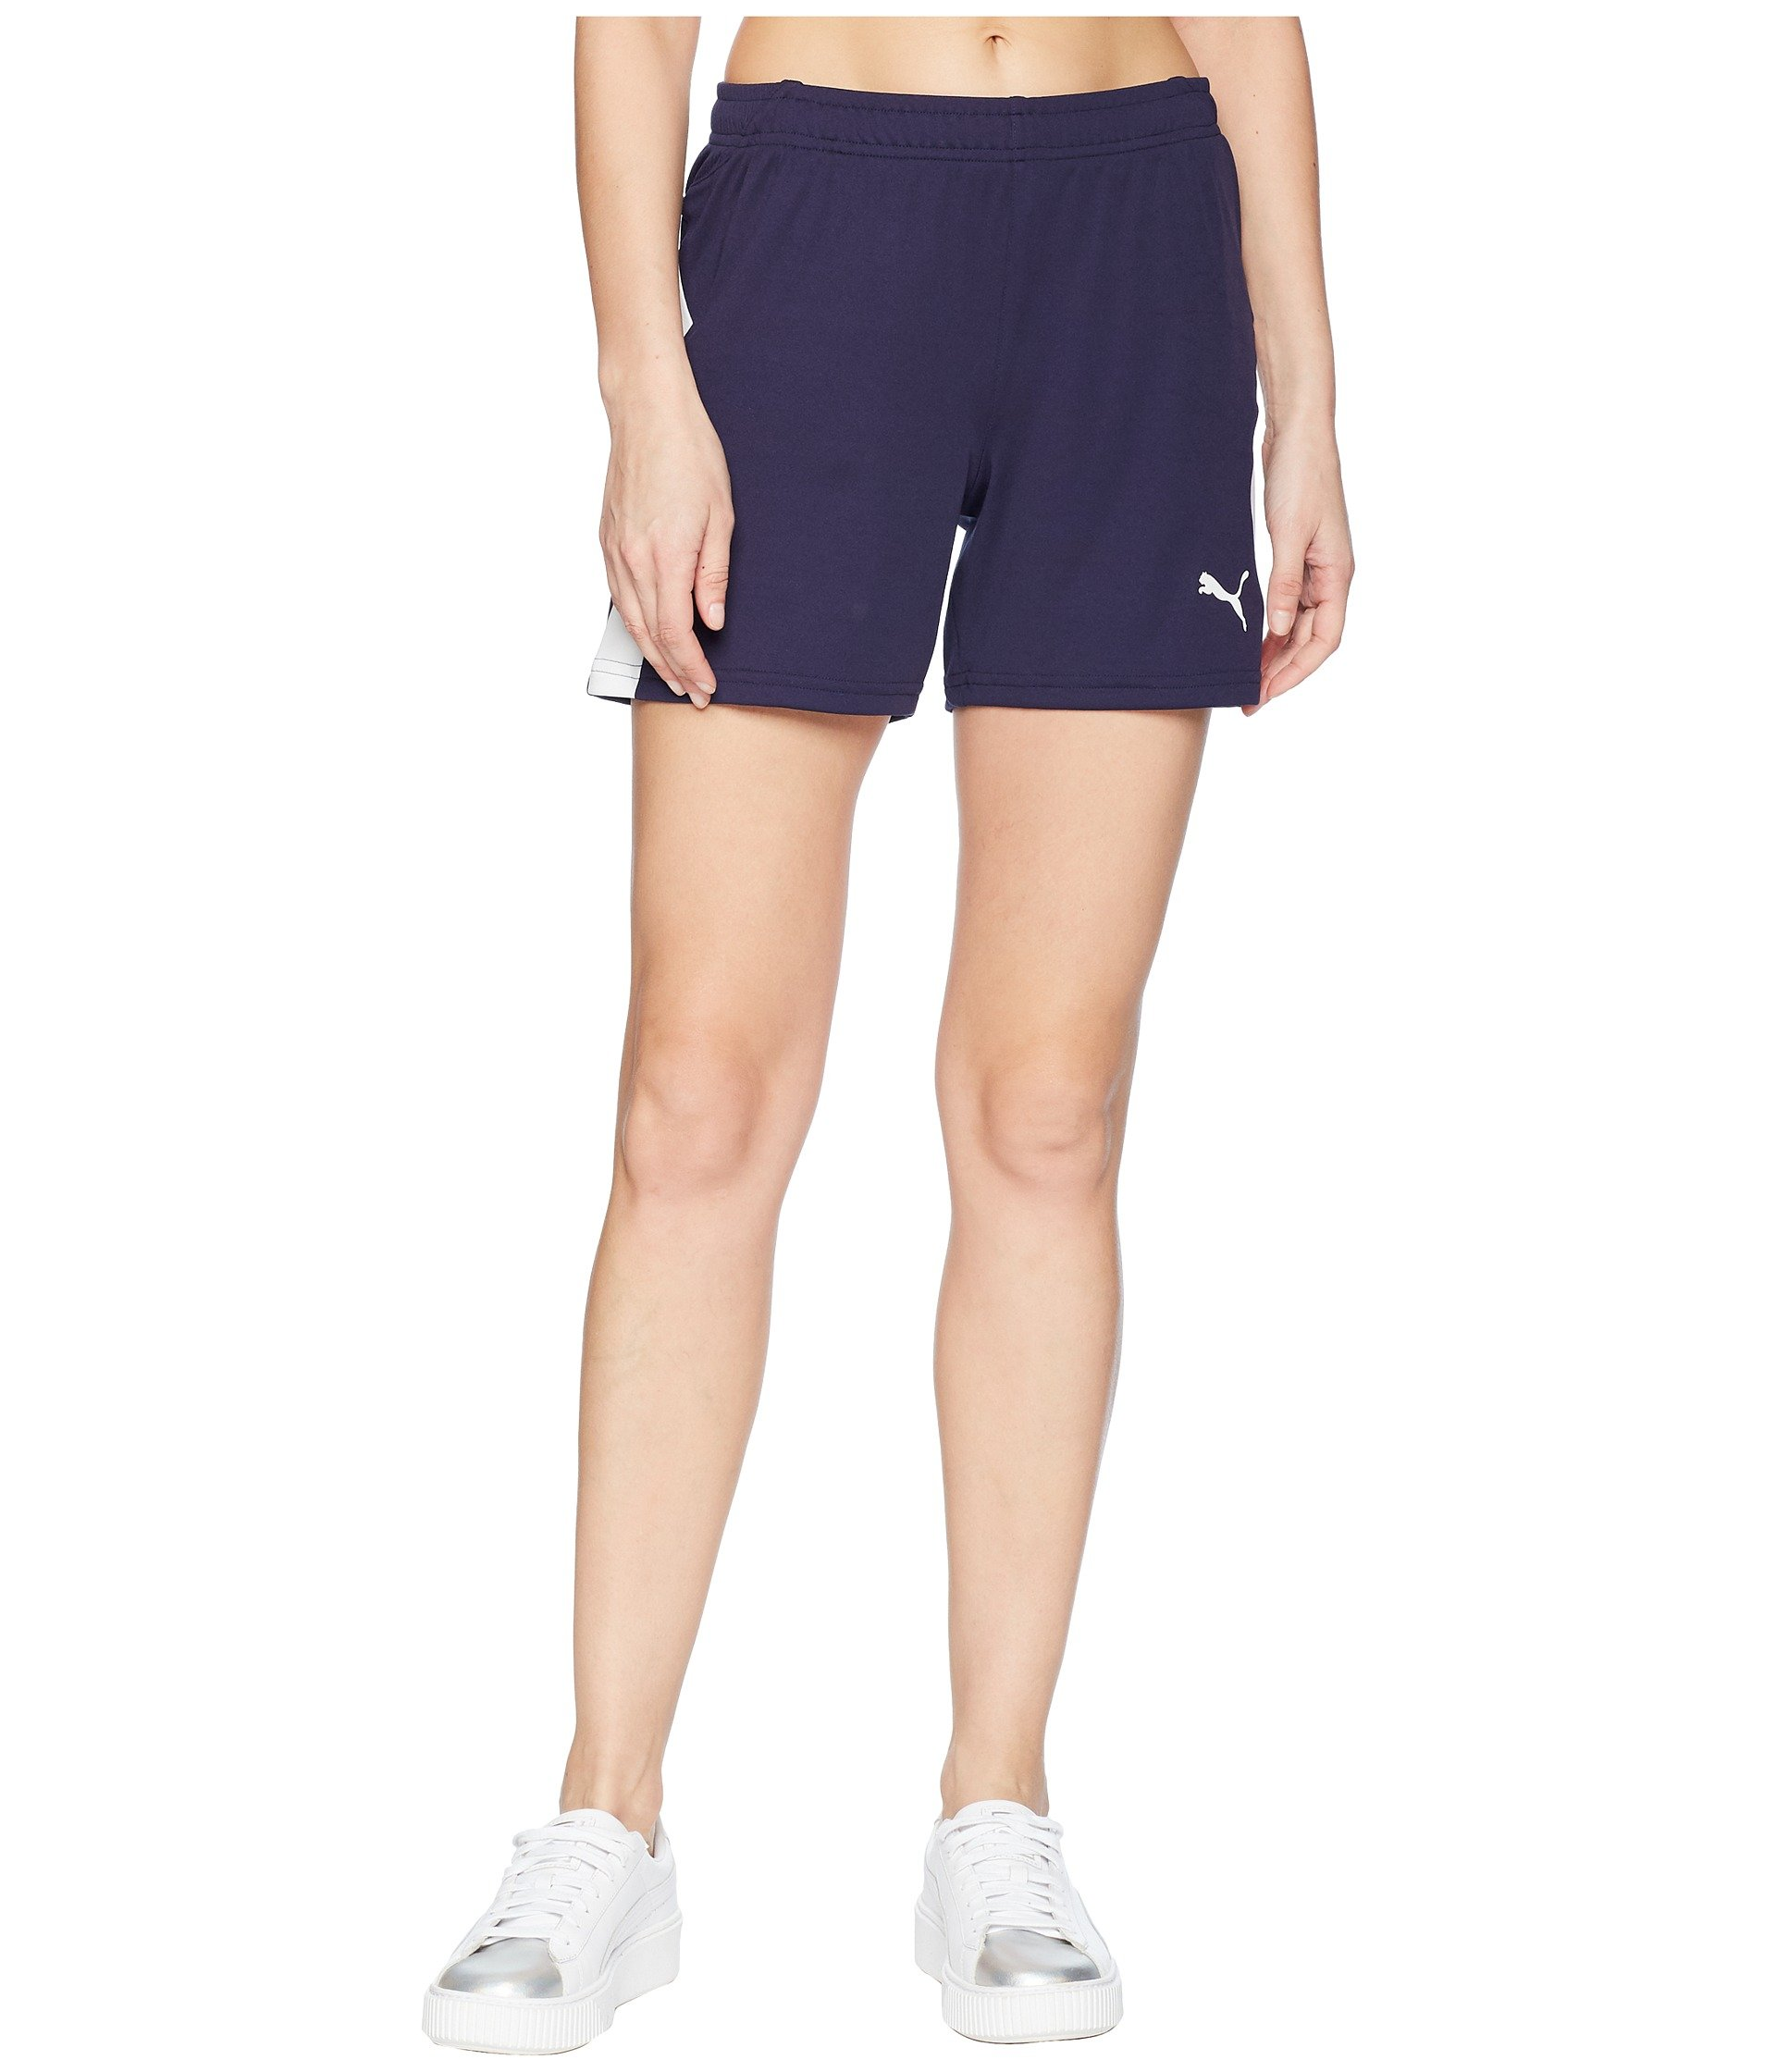 PUMA Women's Liga Shorts Peacoat White Small 5